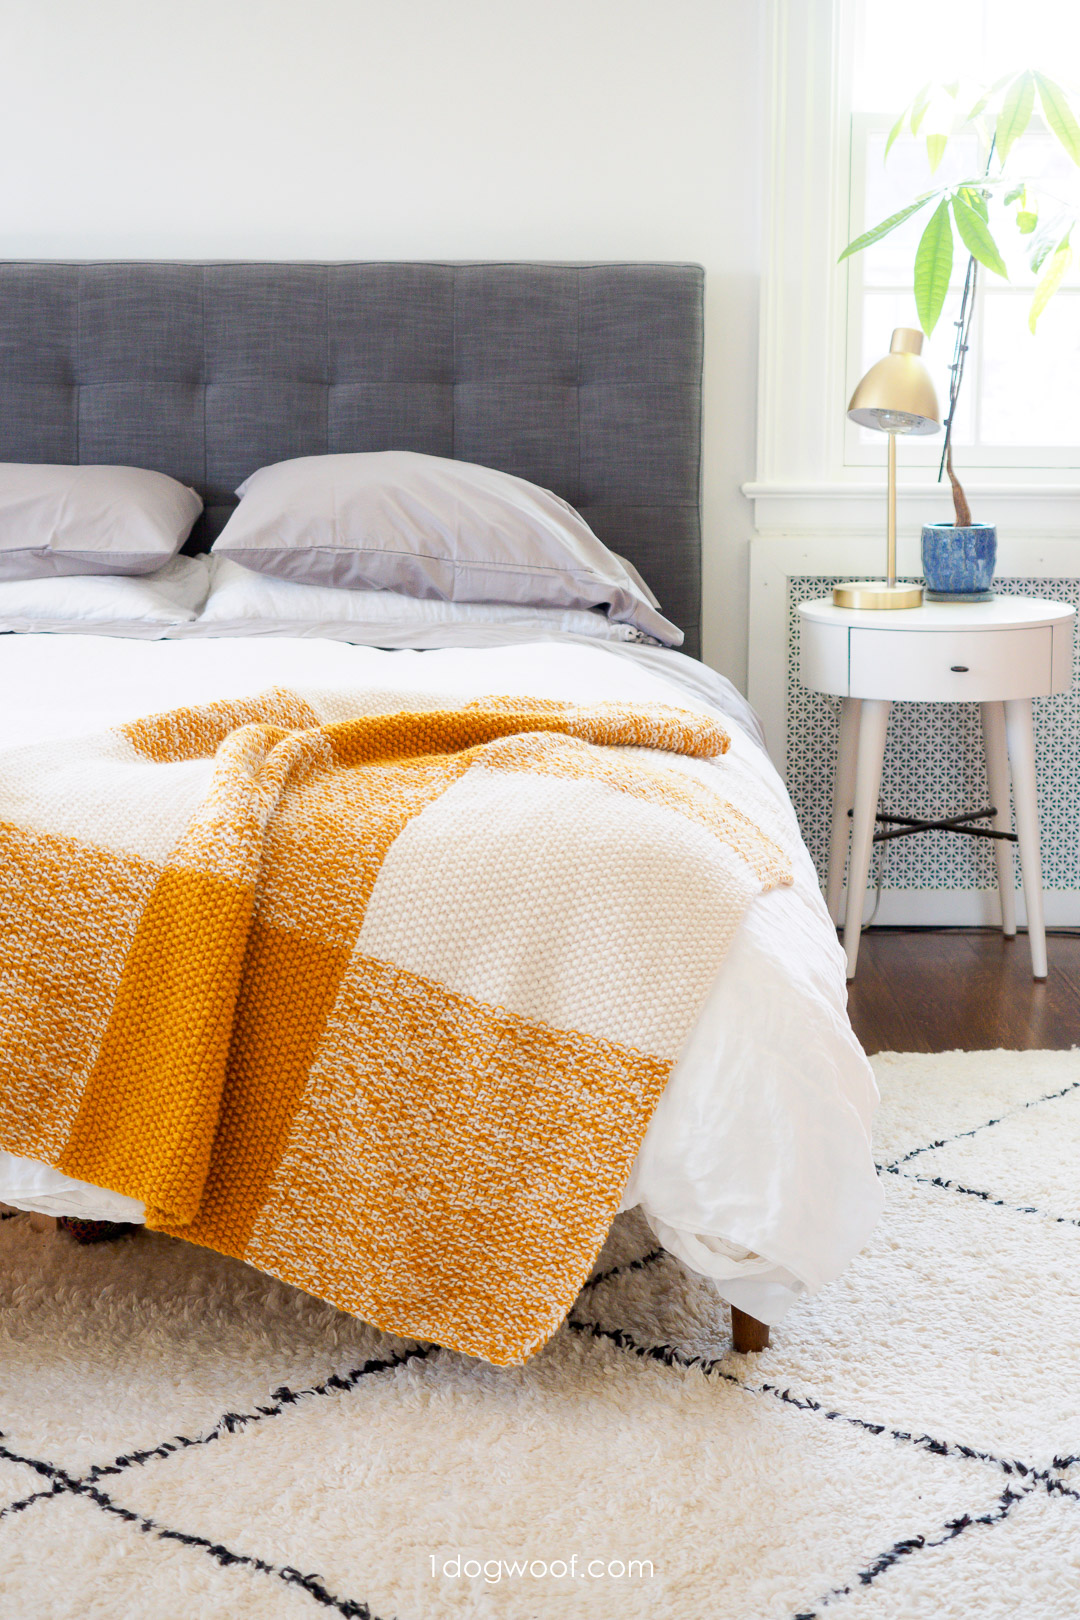 Terra Blanket: A Modern Buffalo Plaid Knitted Blanket